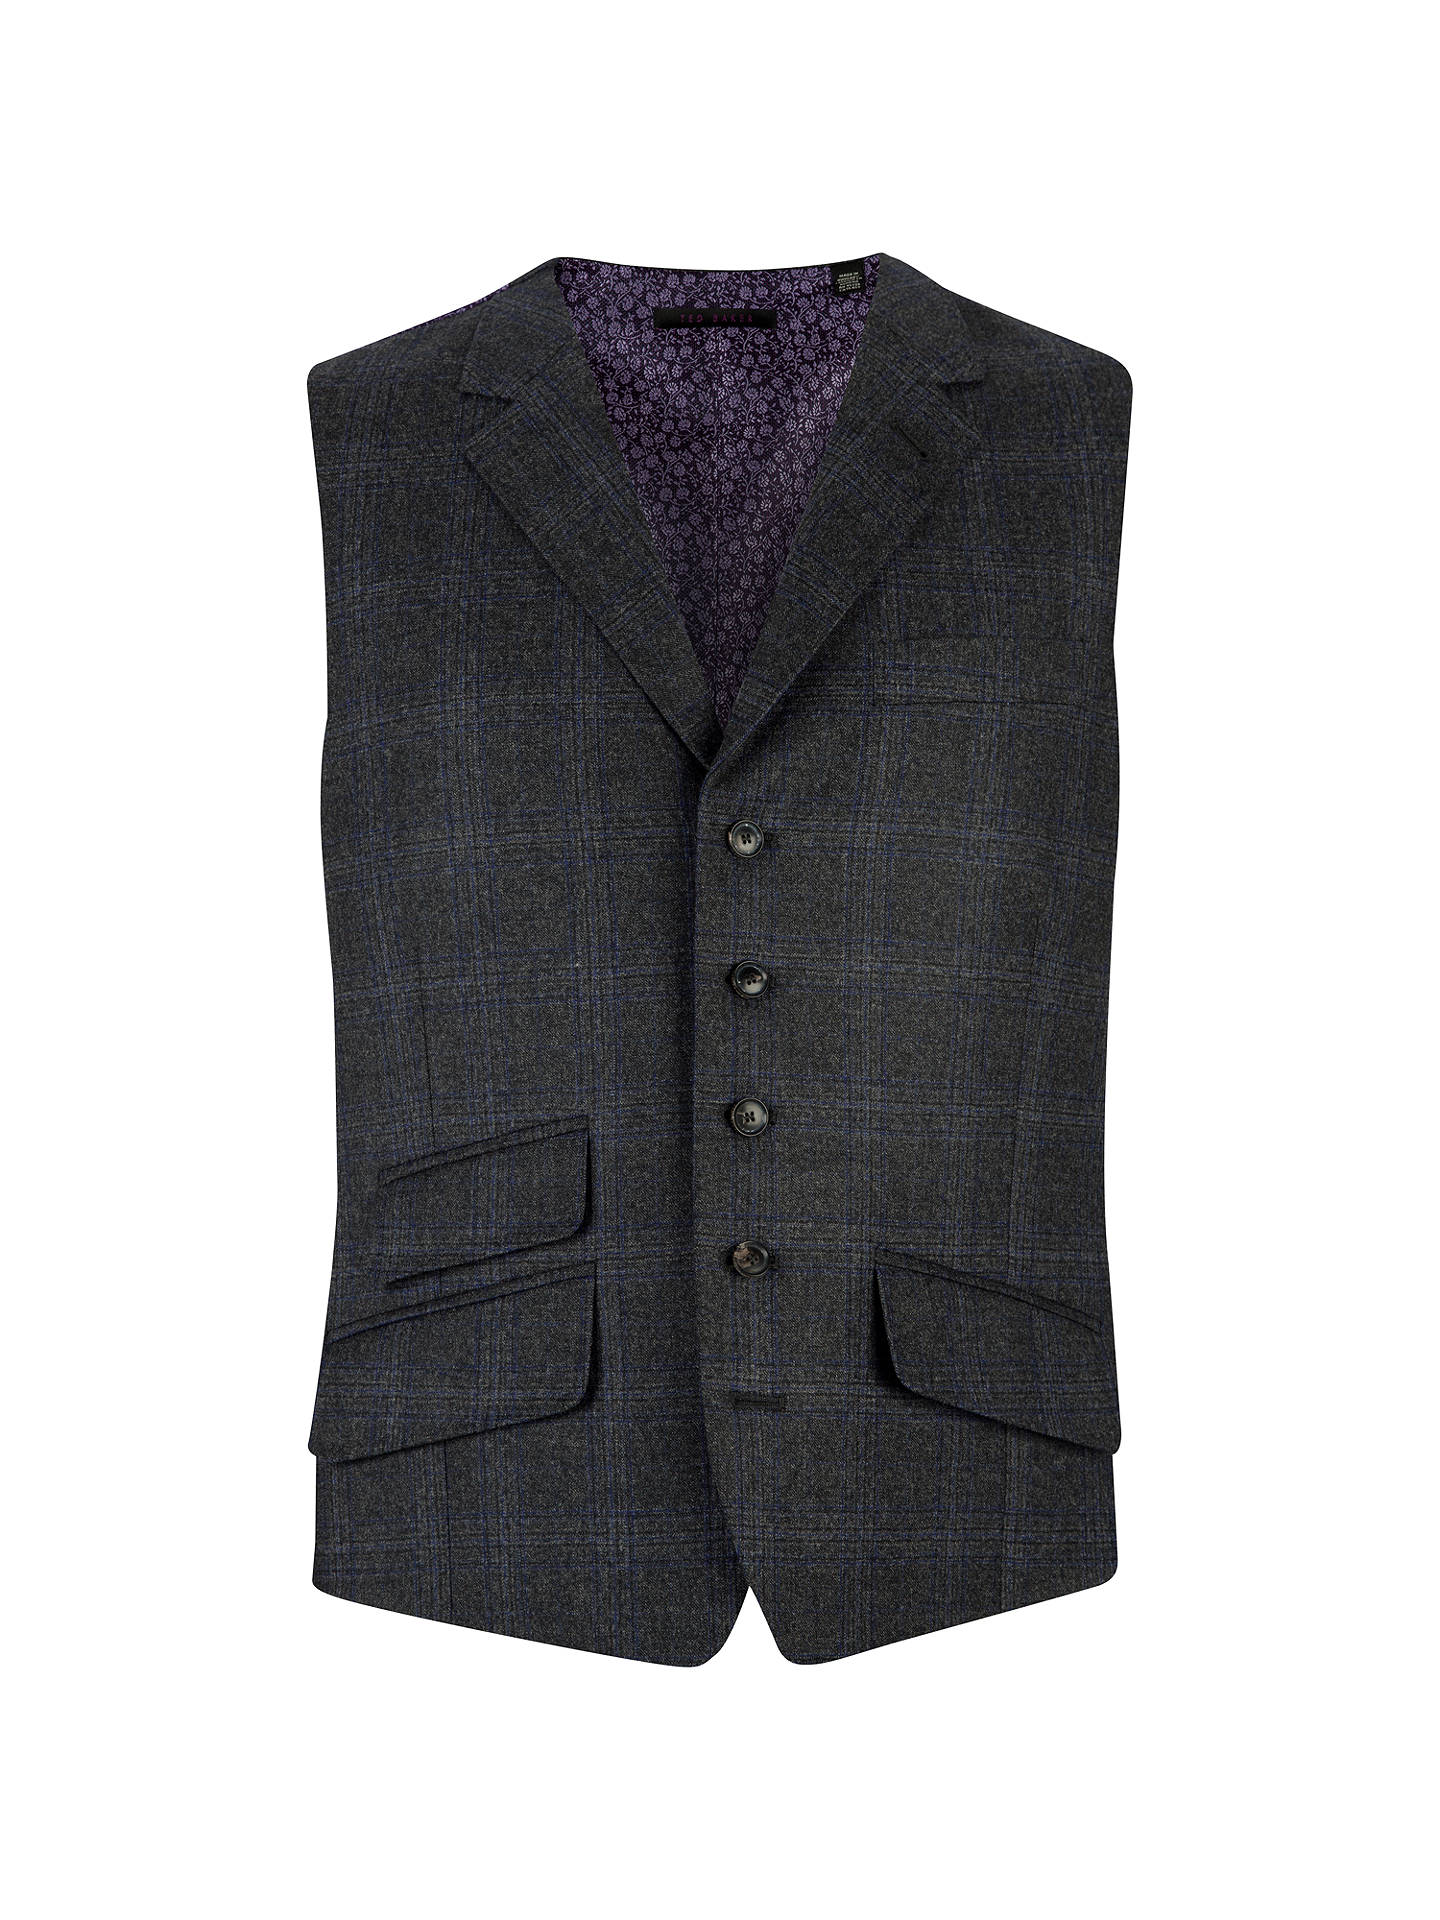 79188a299 Buy Ted Baker Endurance Flannel Overcheck Tailored Waistcoat